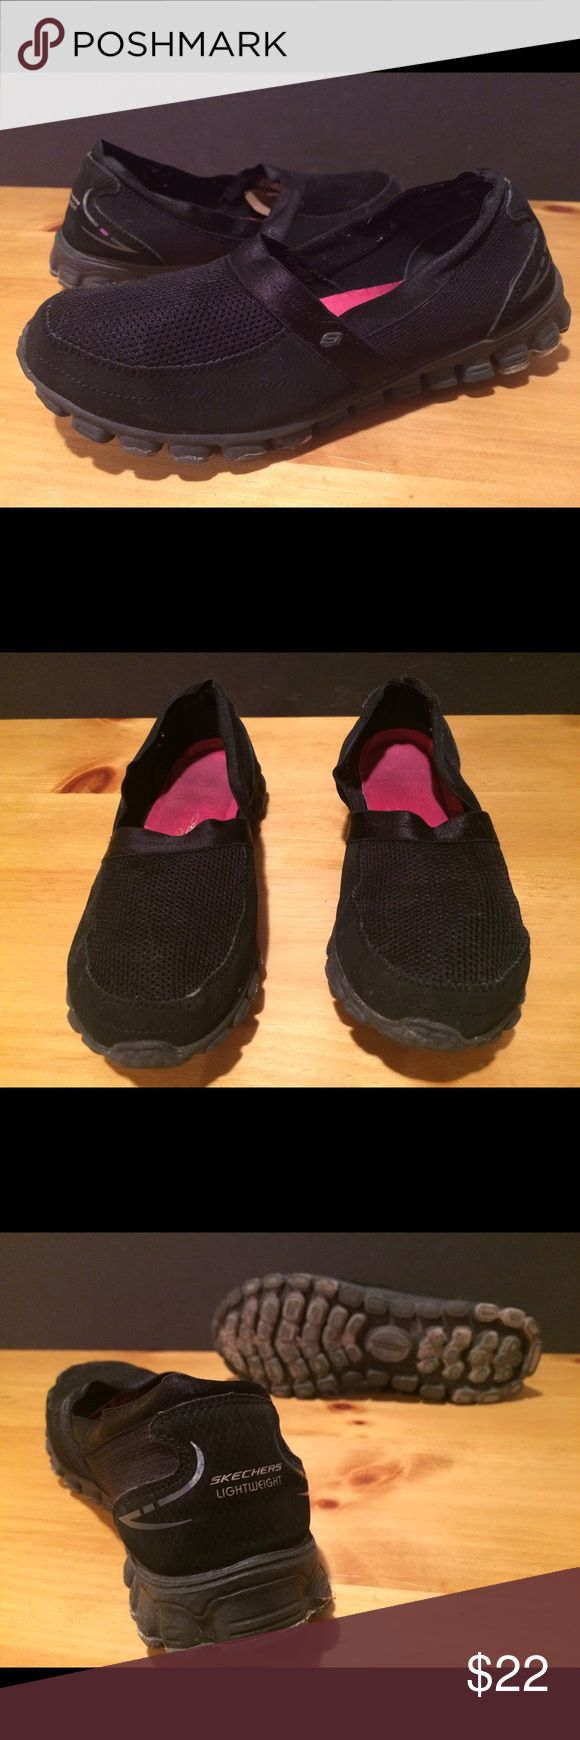 Women's Size 6 Black Skechers Slip On Shoes Women's size 6 black Skechers slip on shoes. See photos and please message with any questions! :) Skechers Shoes Sneakers